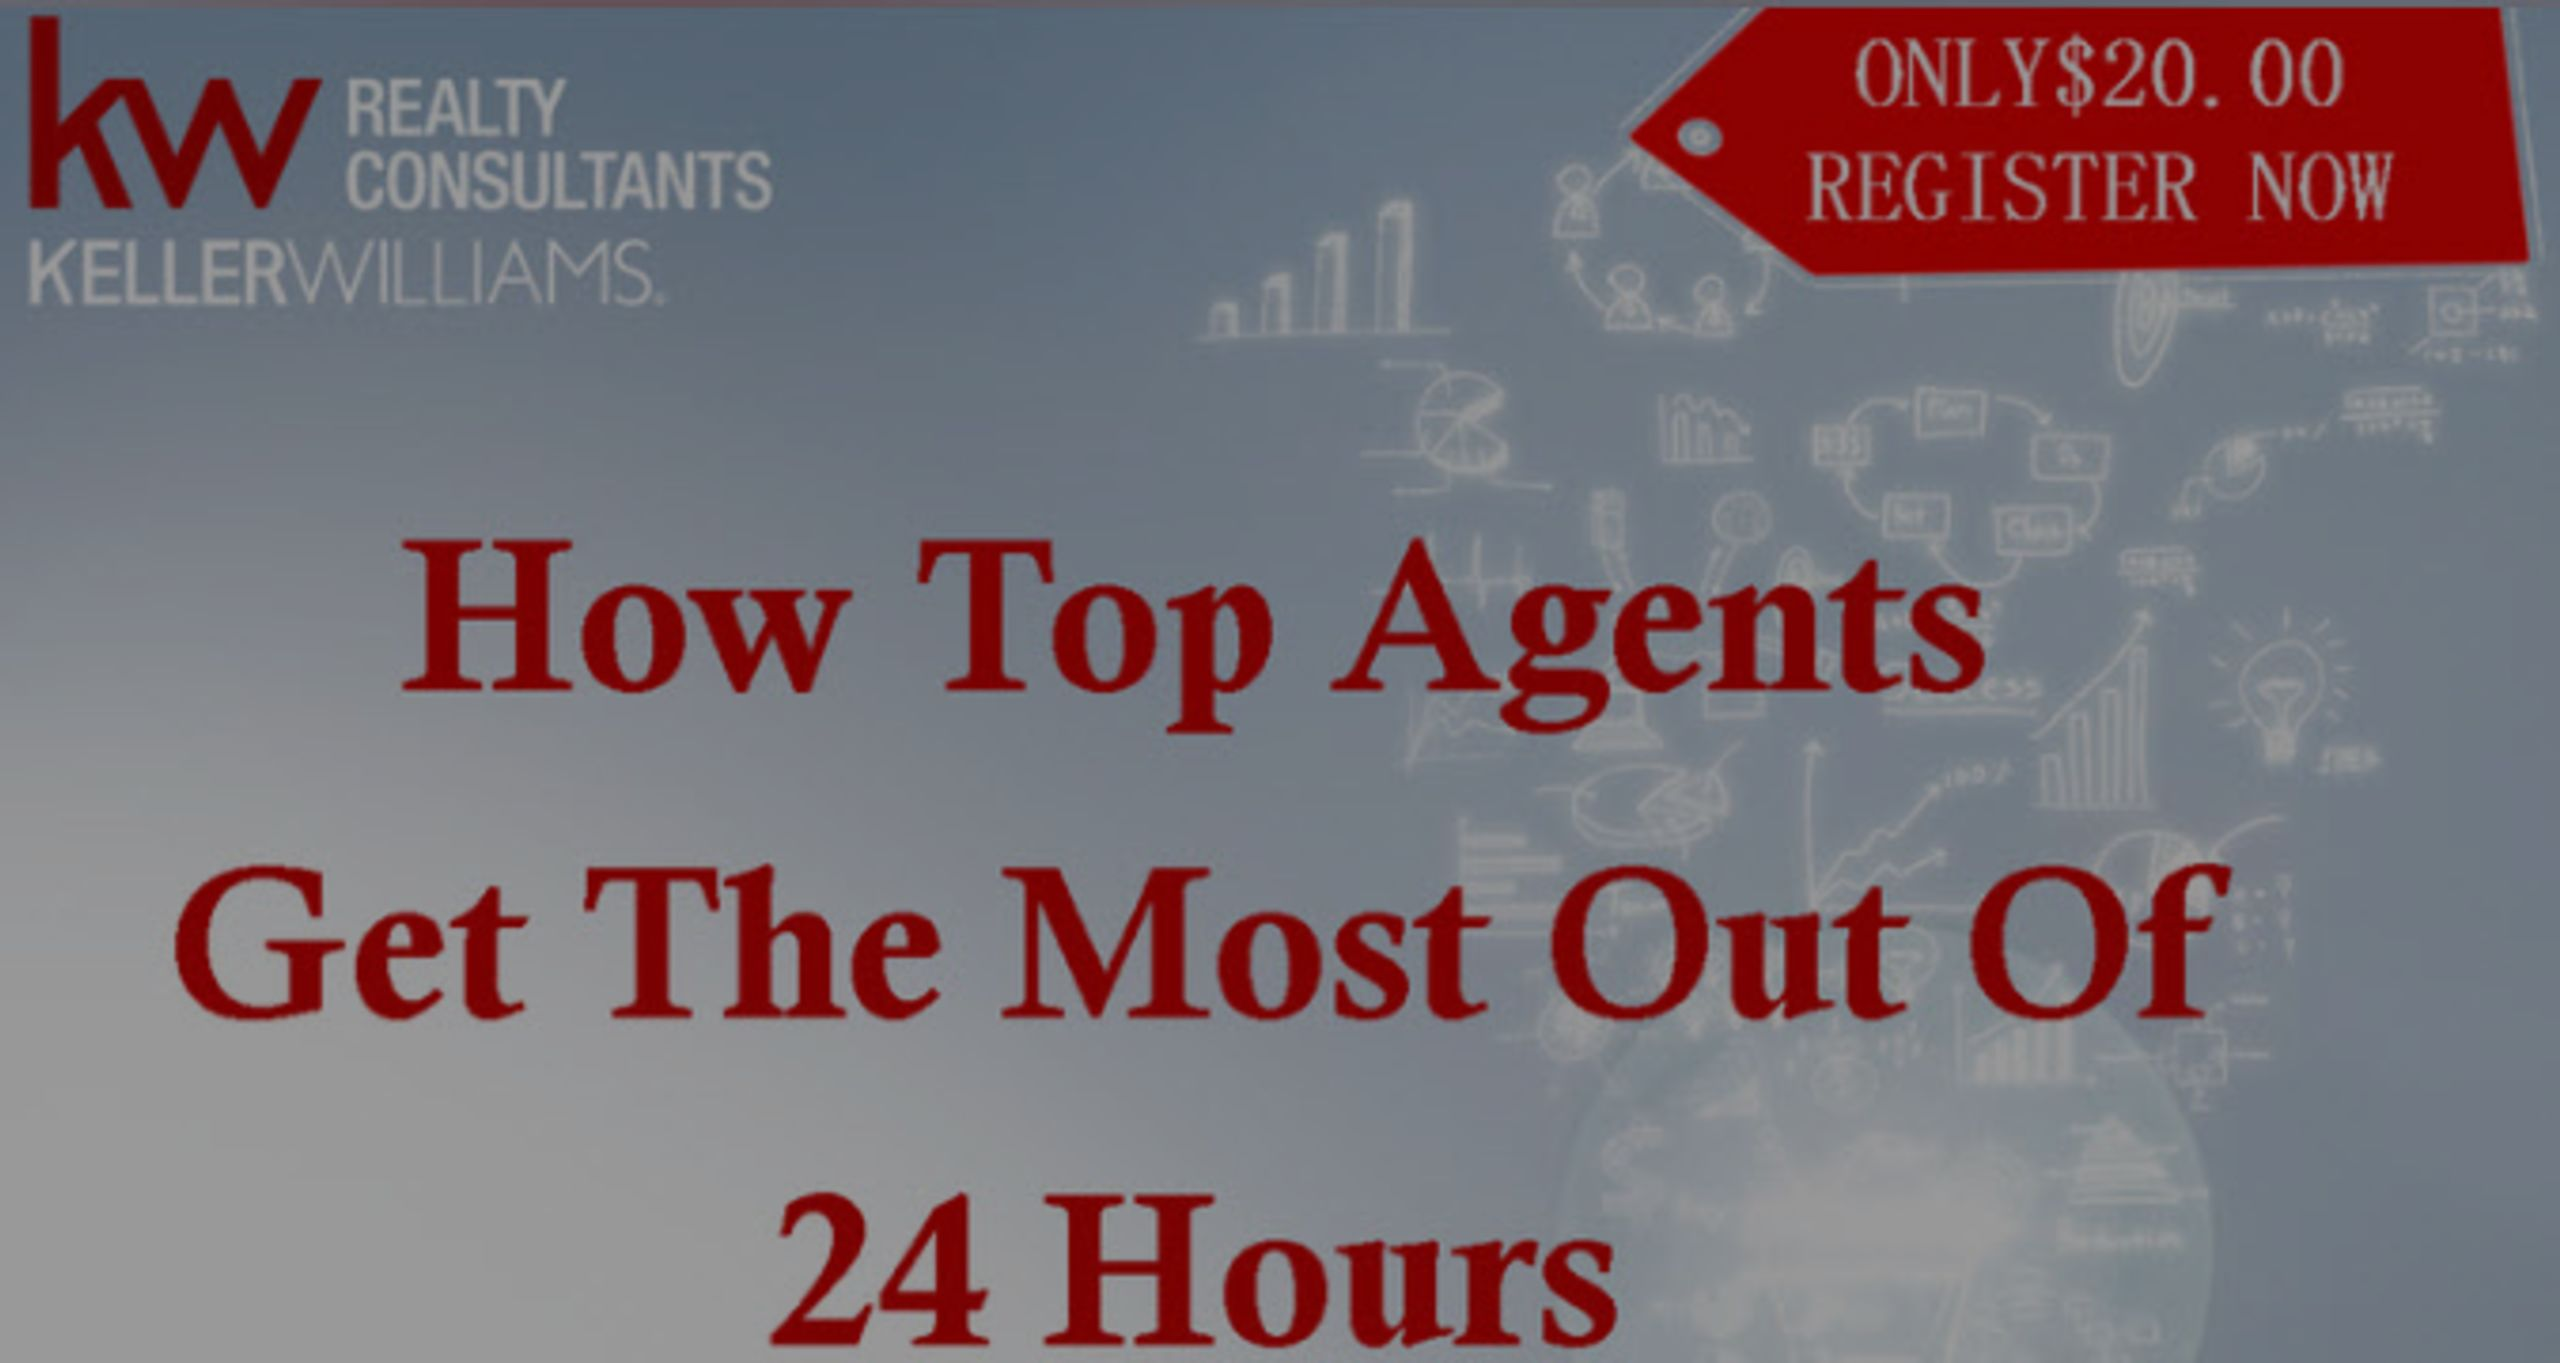 How Top Agents Get the Most Out of 24 Hours!